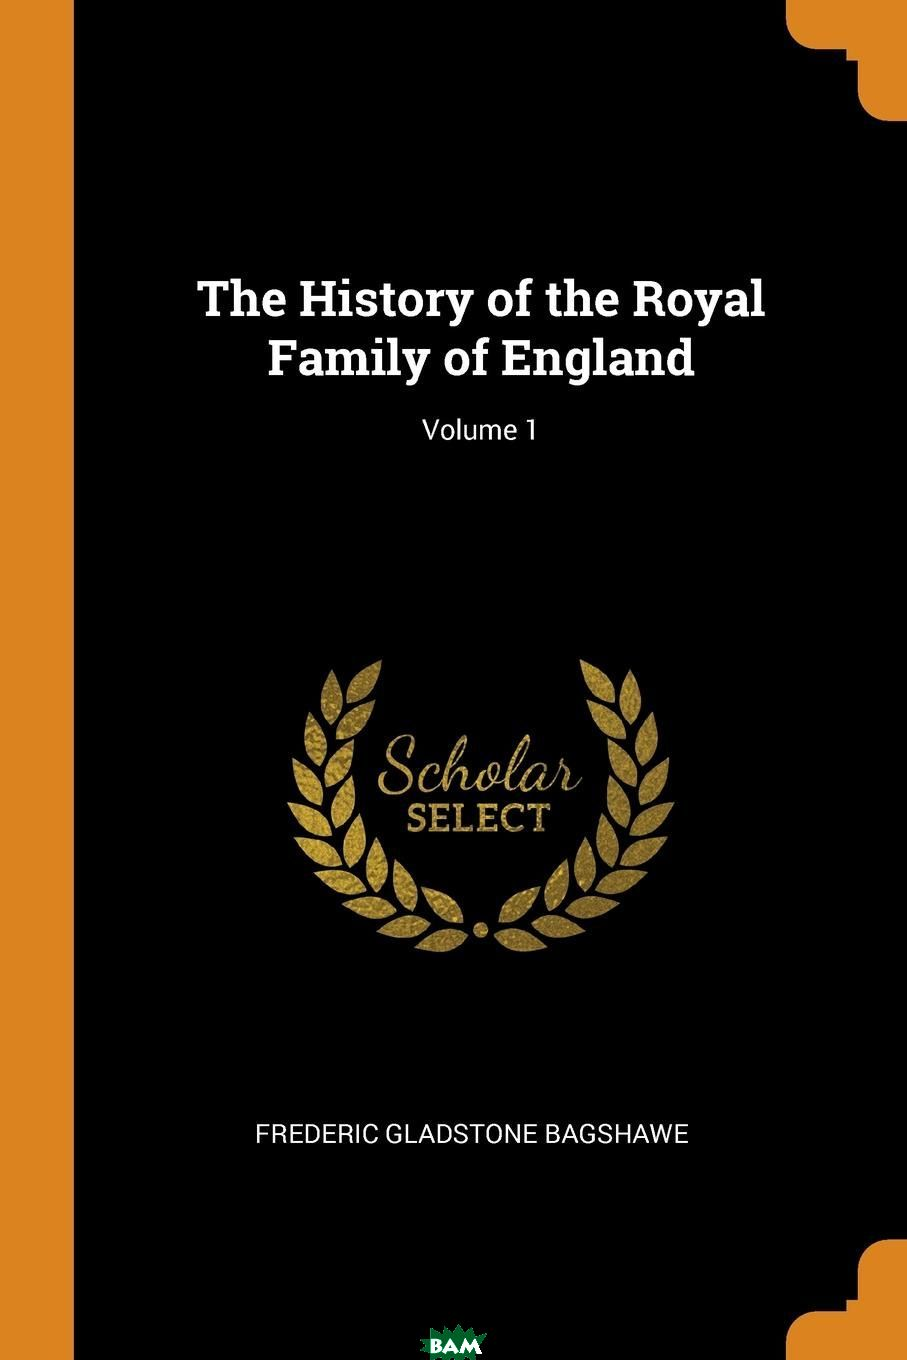 Купить The History of the Royal Family of England; Volume 1, Frederic Gladstone Bagshawe, 9780353061972